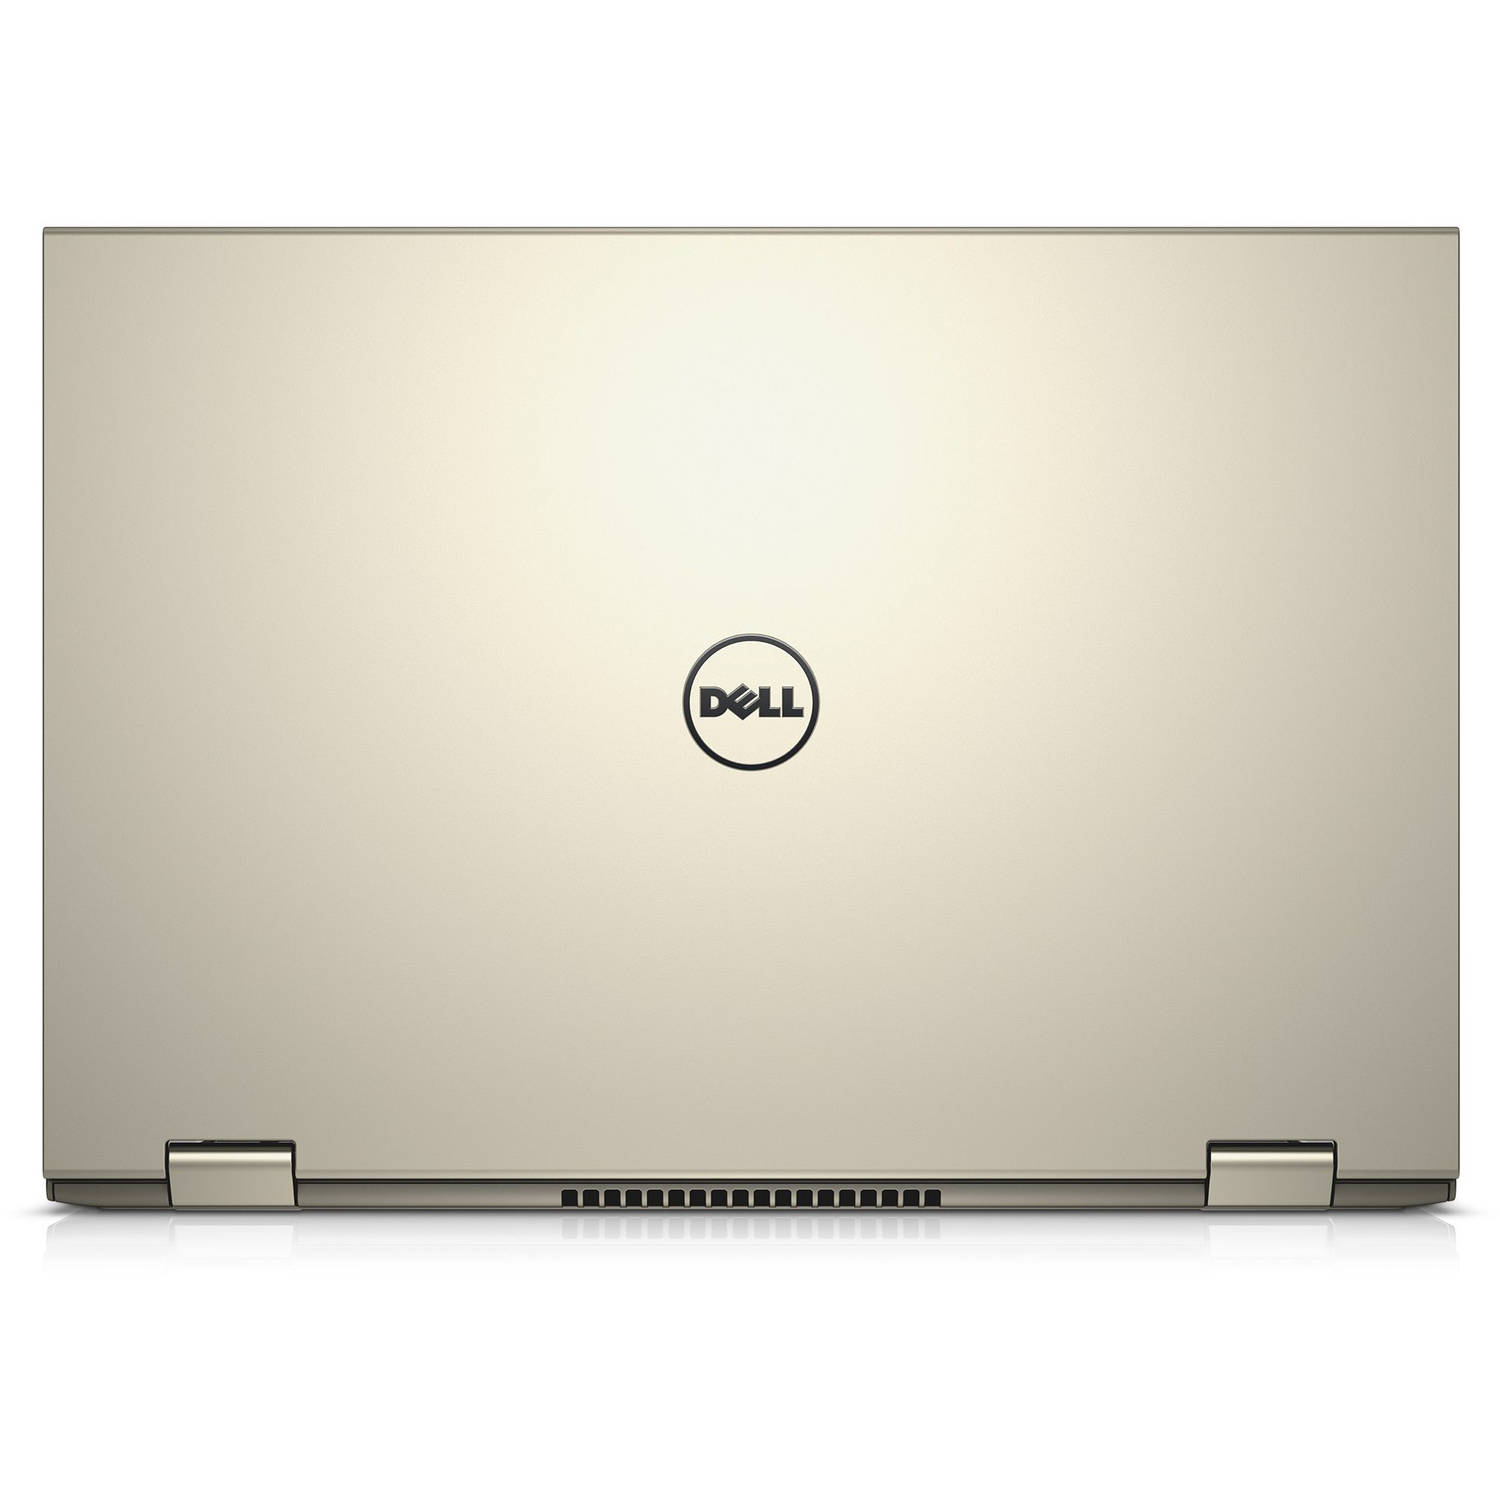 "Dell Gold 13.3"" Inspiron i7359 Laptop PC with Intel Core i3-6100U Processor, 4GB Memory, 1TB Hard Drive, Touchscreen and Windows 10 Home"